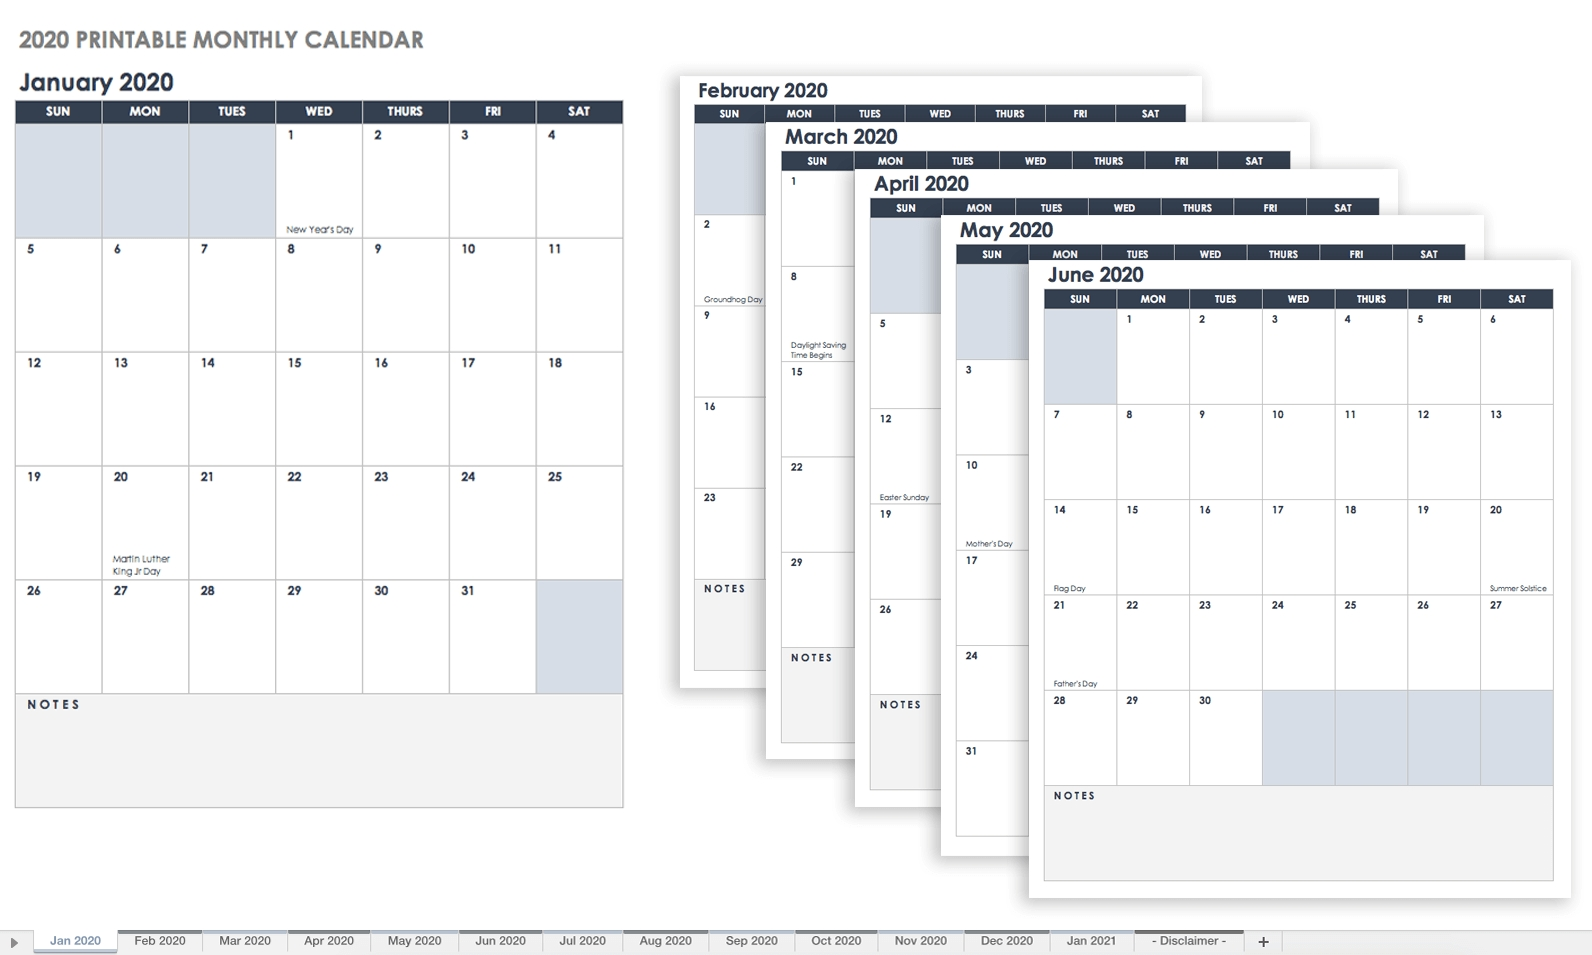 Free Blank Calendar Templates - Smartsheet within Fill In The Date Calendar Printable